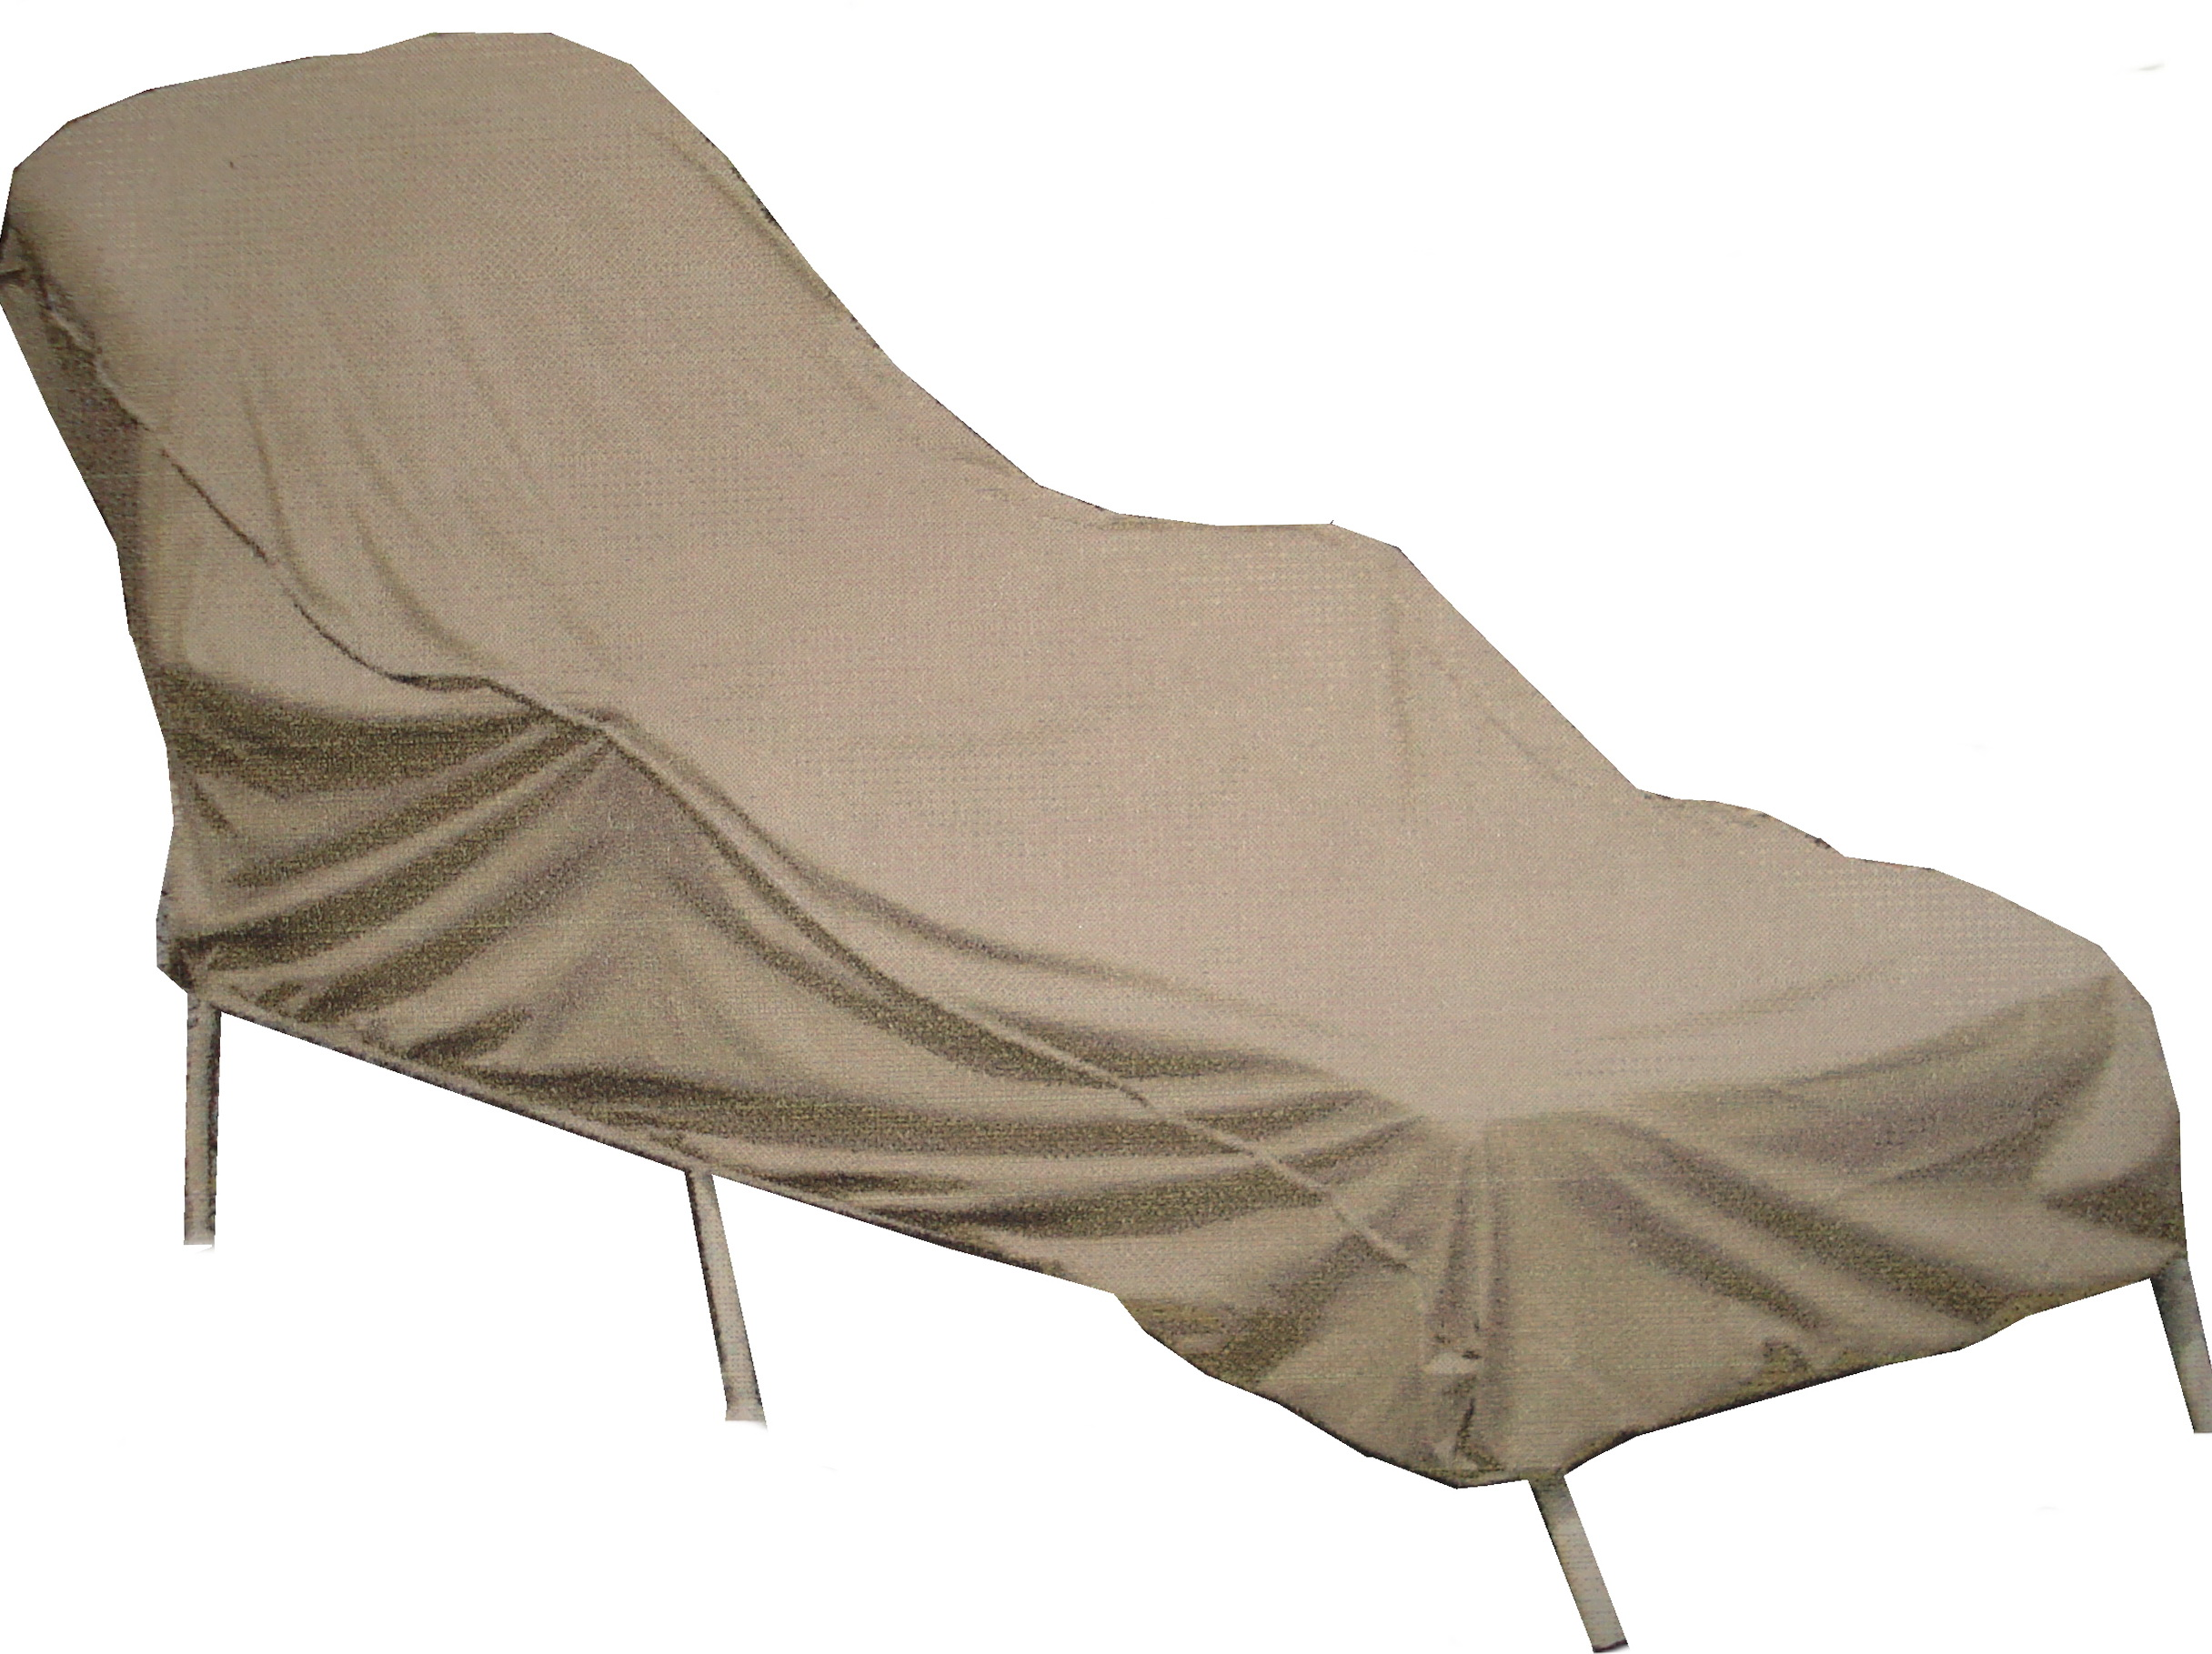 Pool Chaise Lounge Covers